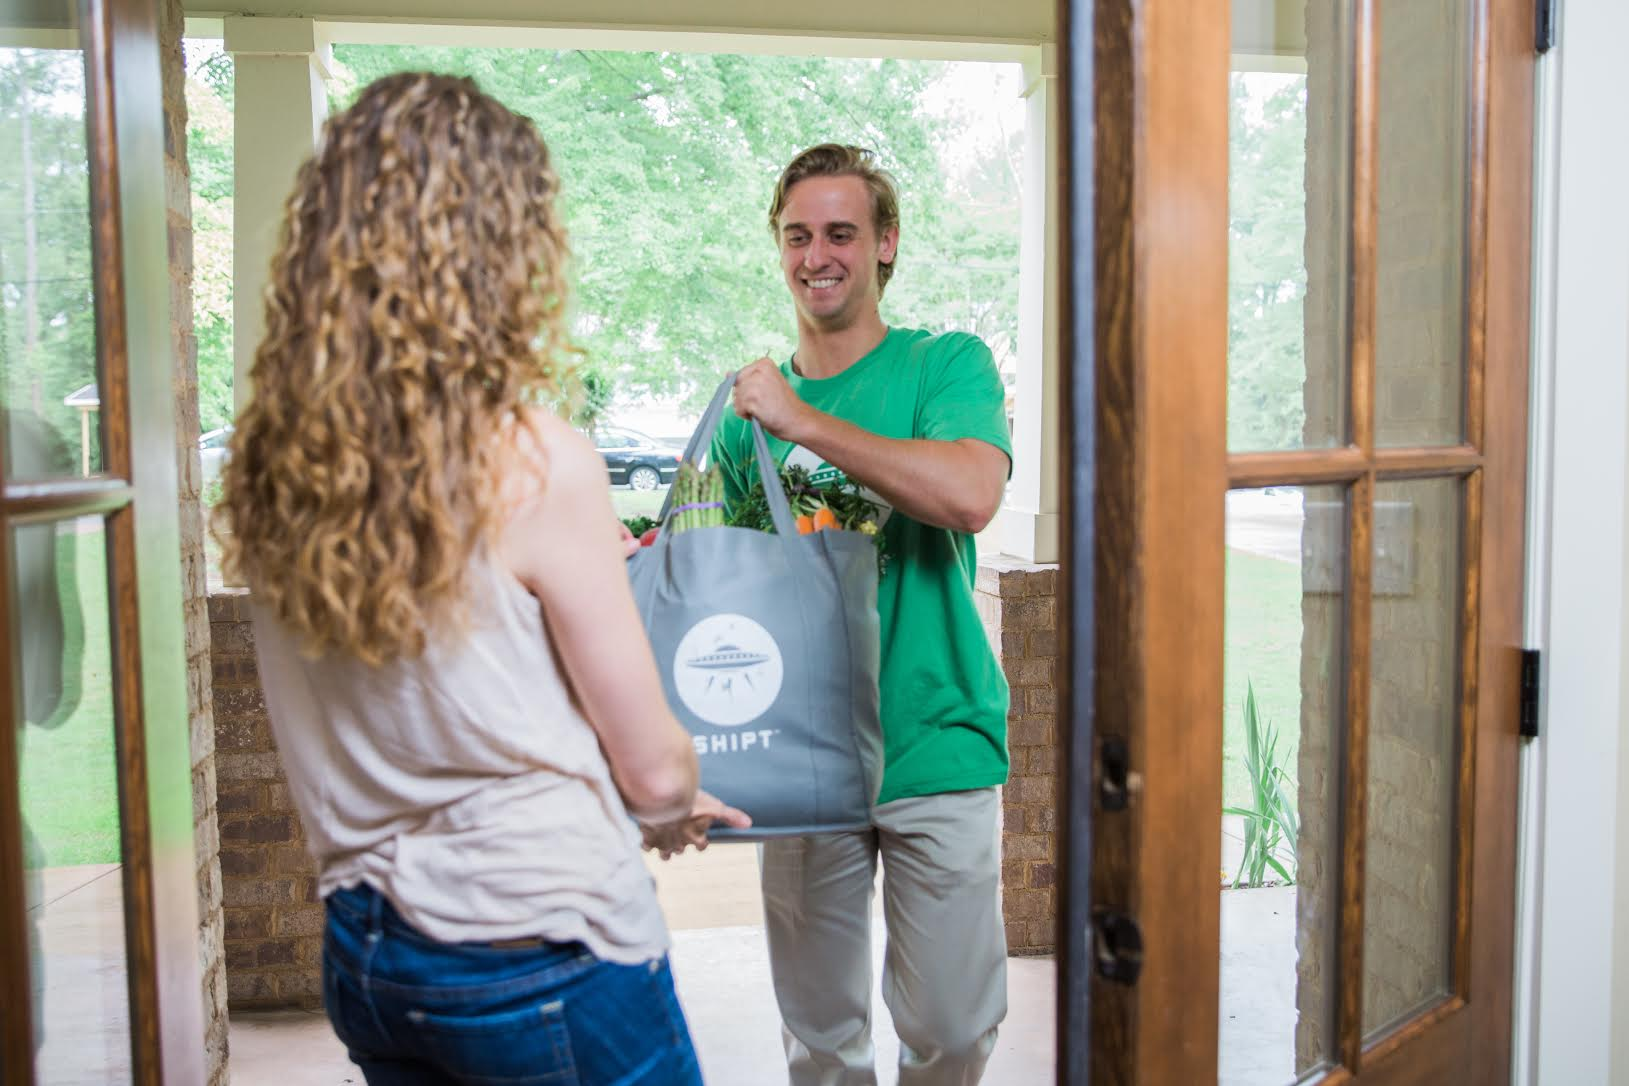 Popular New Grocery Delivery Service 'Shipt' Just Launched